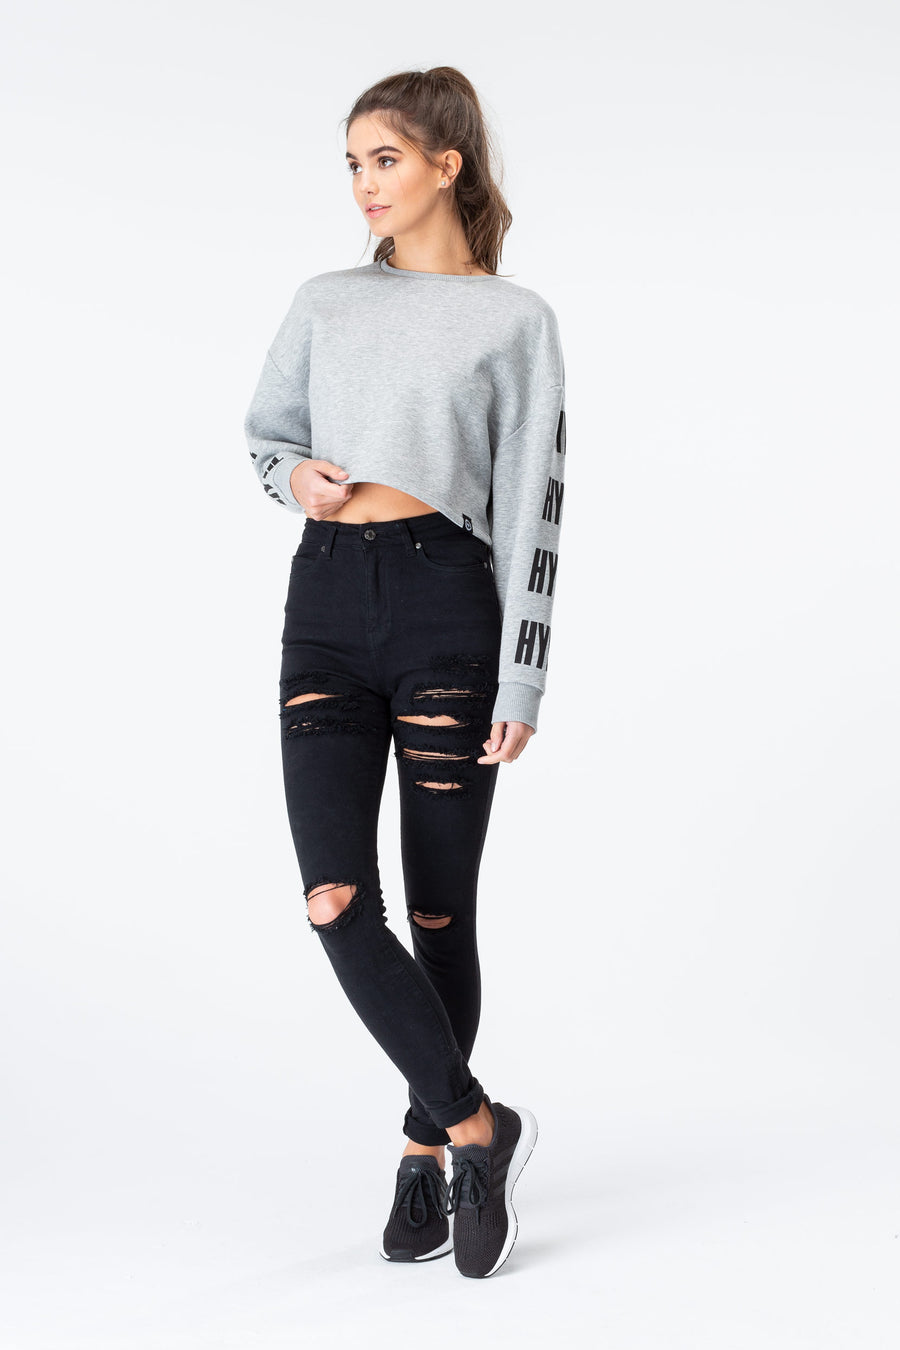 HYPE GREY MARL BLOCK CROP CREW